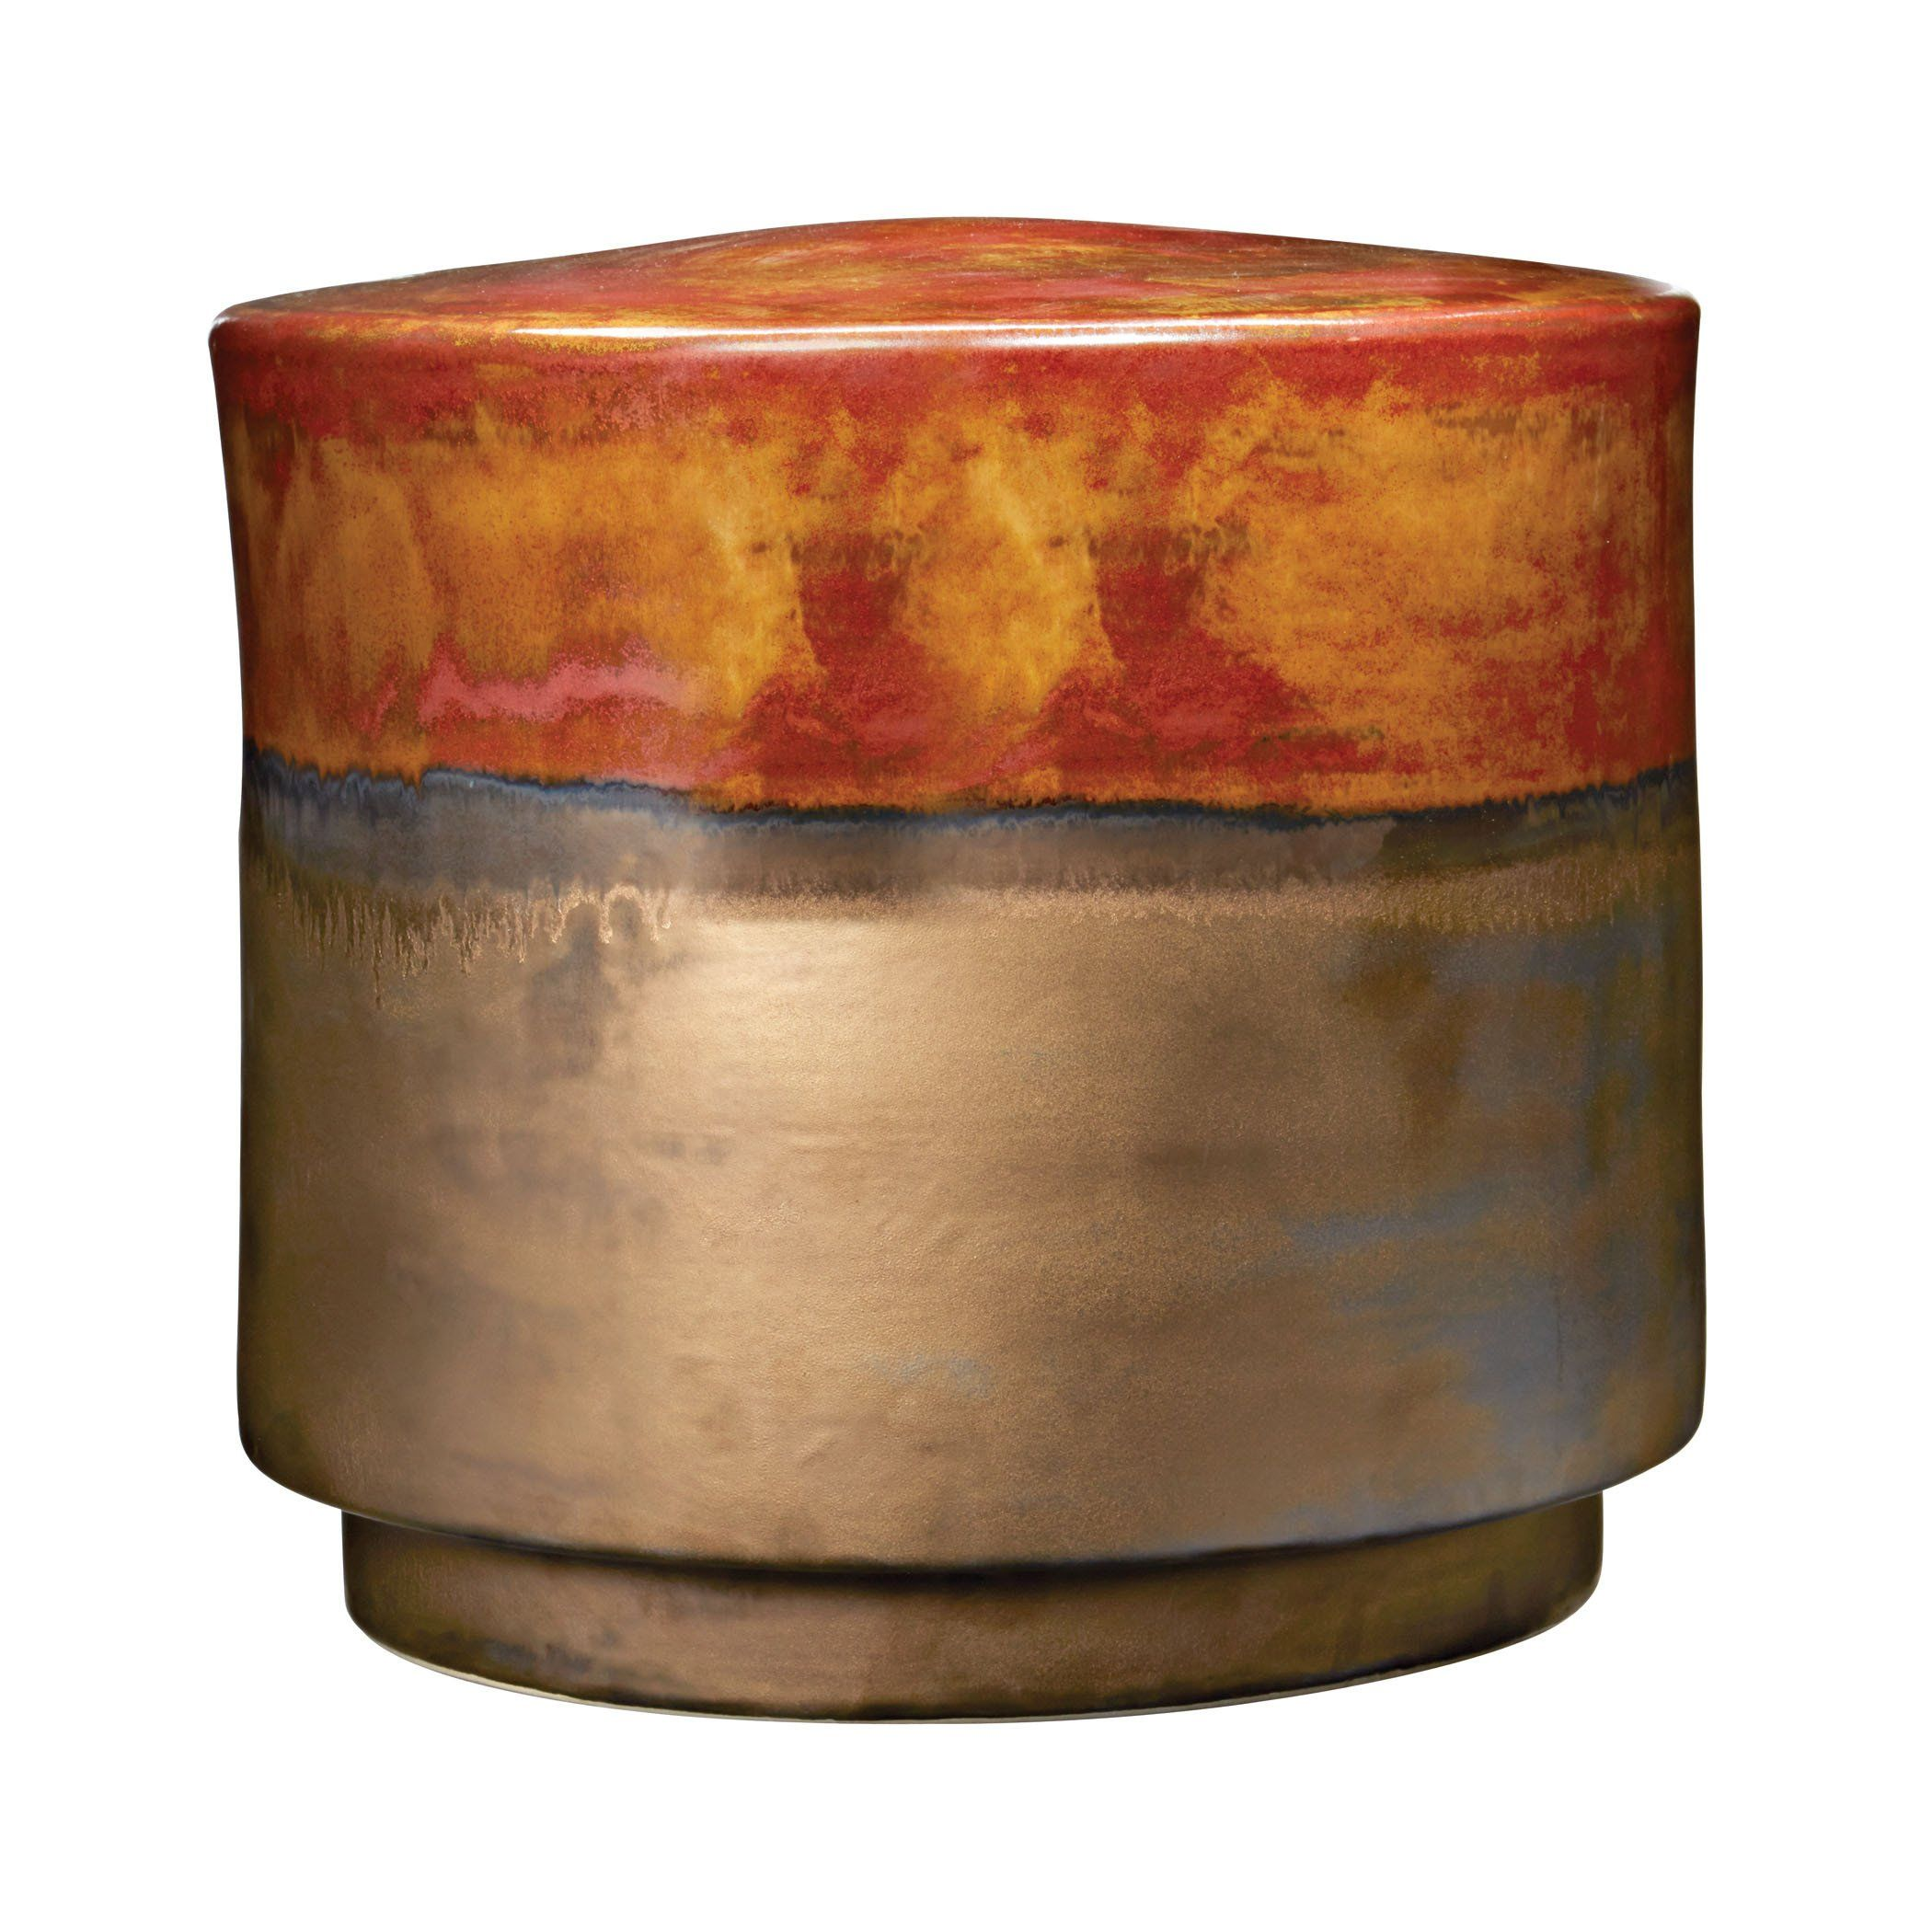 Coffee And Burnt Gold Garden Stool - Short | Stools and Products